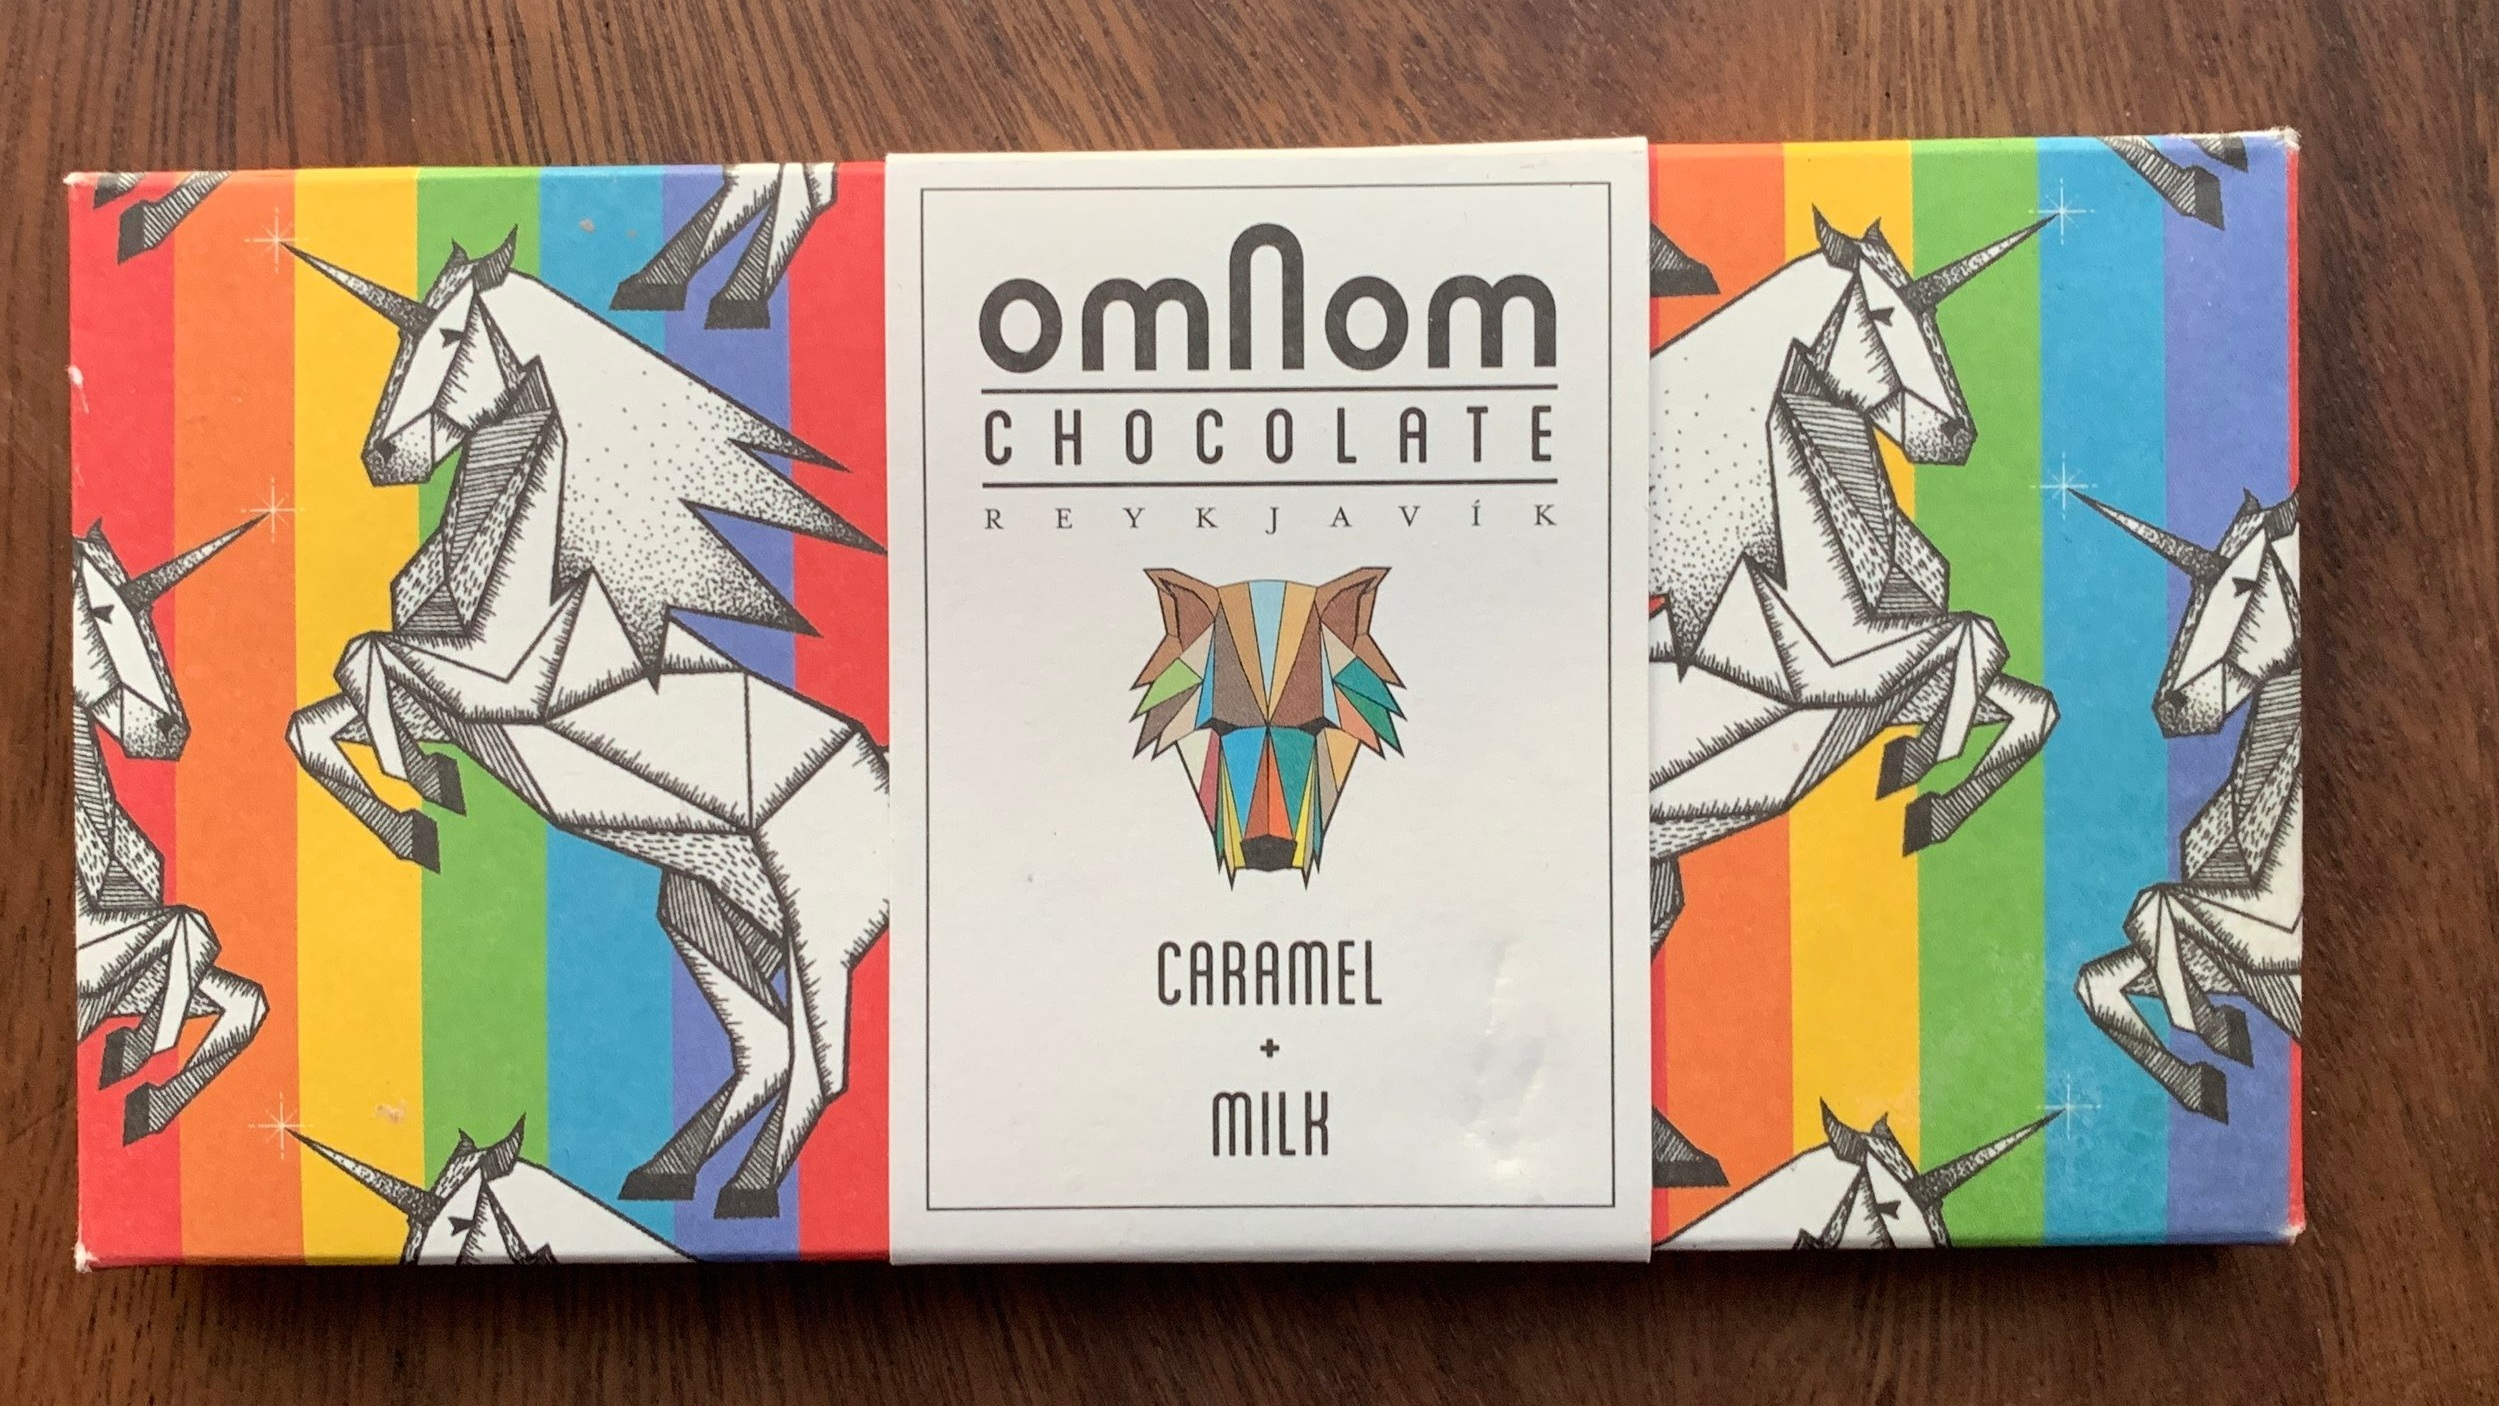 Omnom - Butter forward, smooth, lightly salted, nice addition of caramel pearls